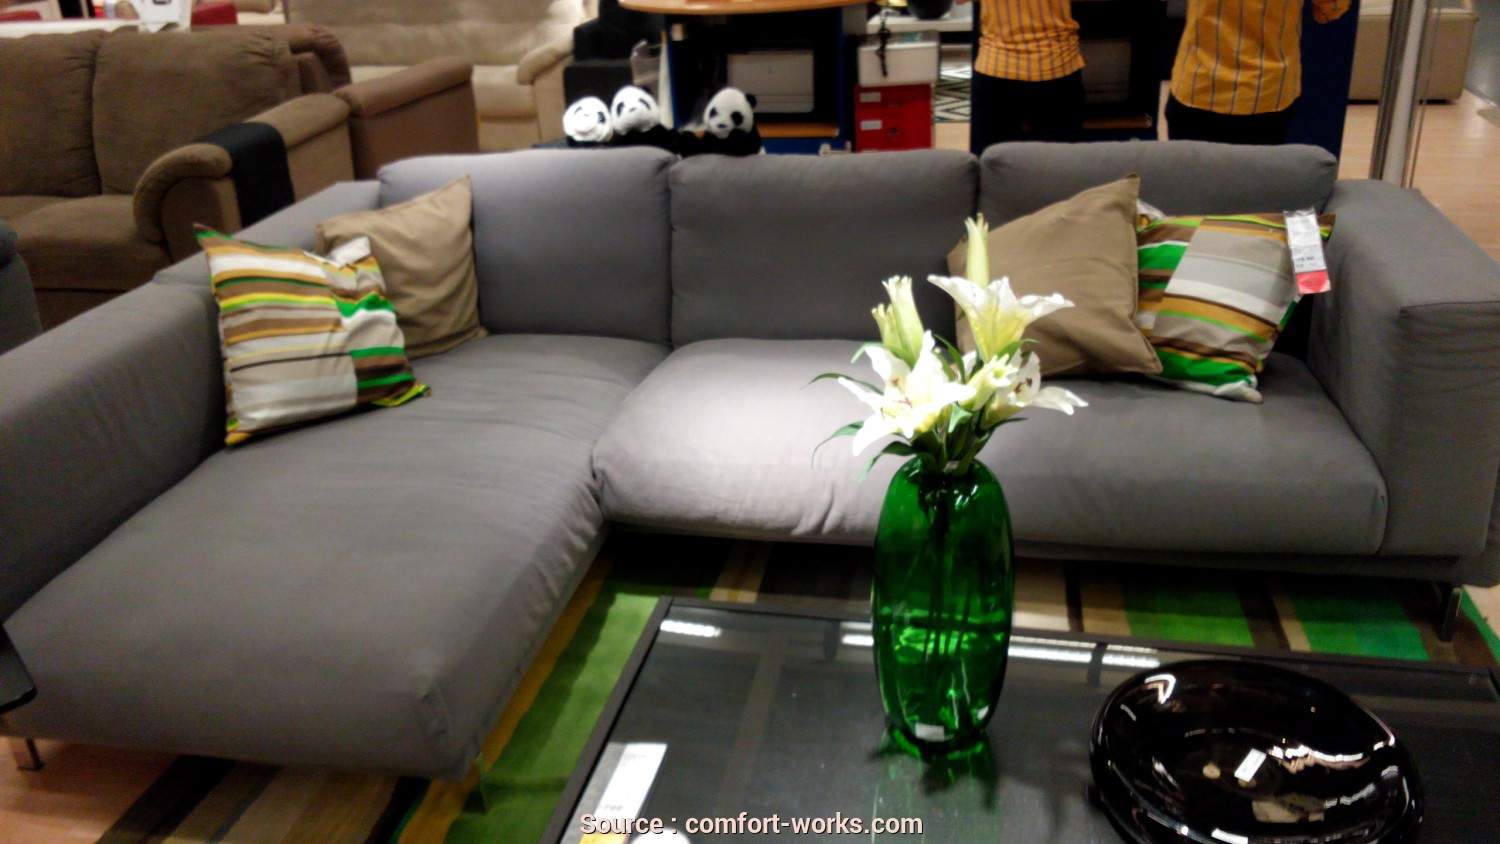 Ikea Backabro Sofa Review, Freddo IKEA Nockeby Sofa Review -, IKEA Couch Series, 2014